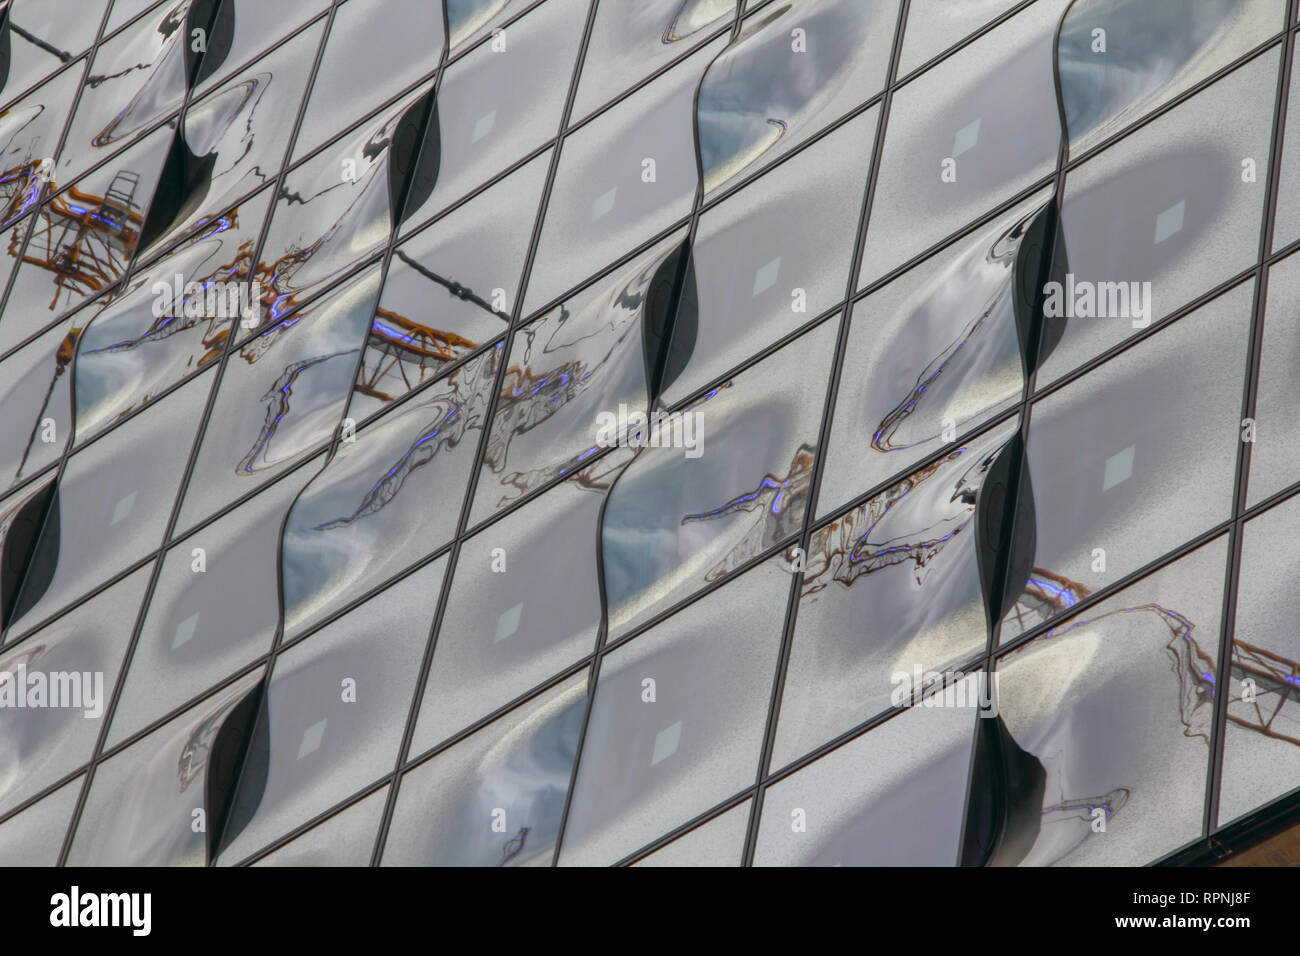 Reflections on glass wall panels of Philharmonie building Hamburg harbor impressions archival 2010 - Stock Image